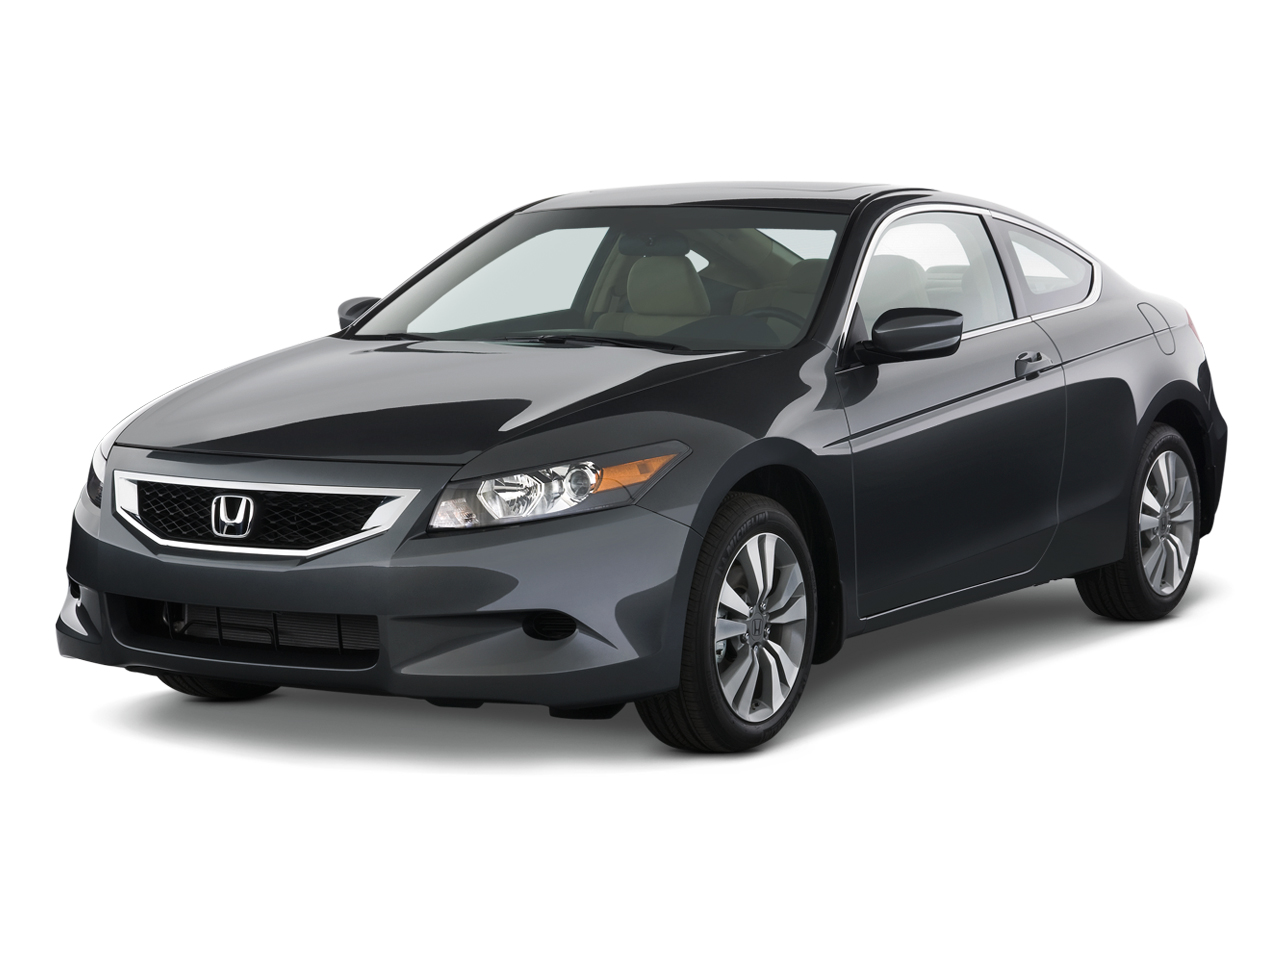 2010 honda accord coupe review ratings specs prices. Black Bedroom Furniture Sets. Home Design Ideas